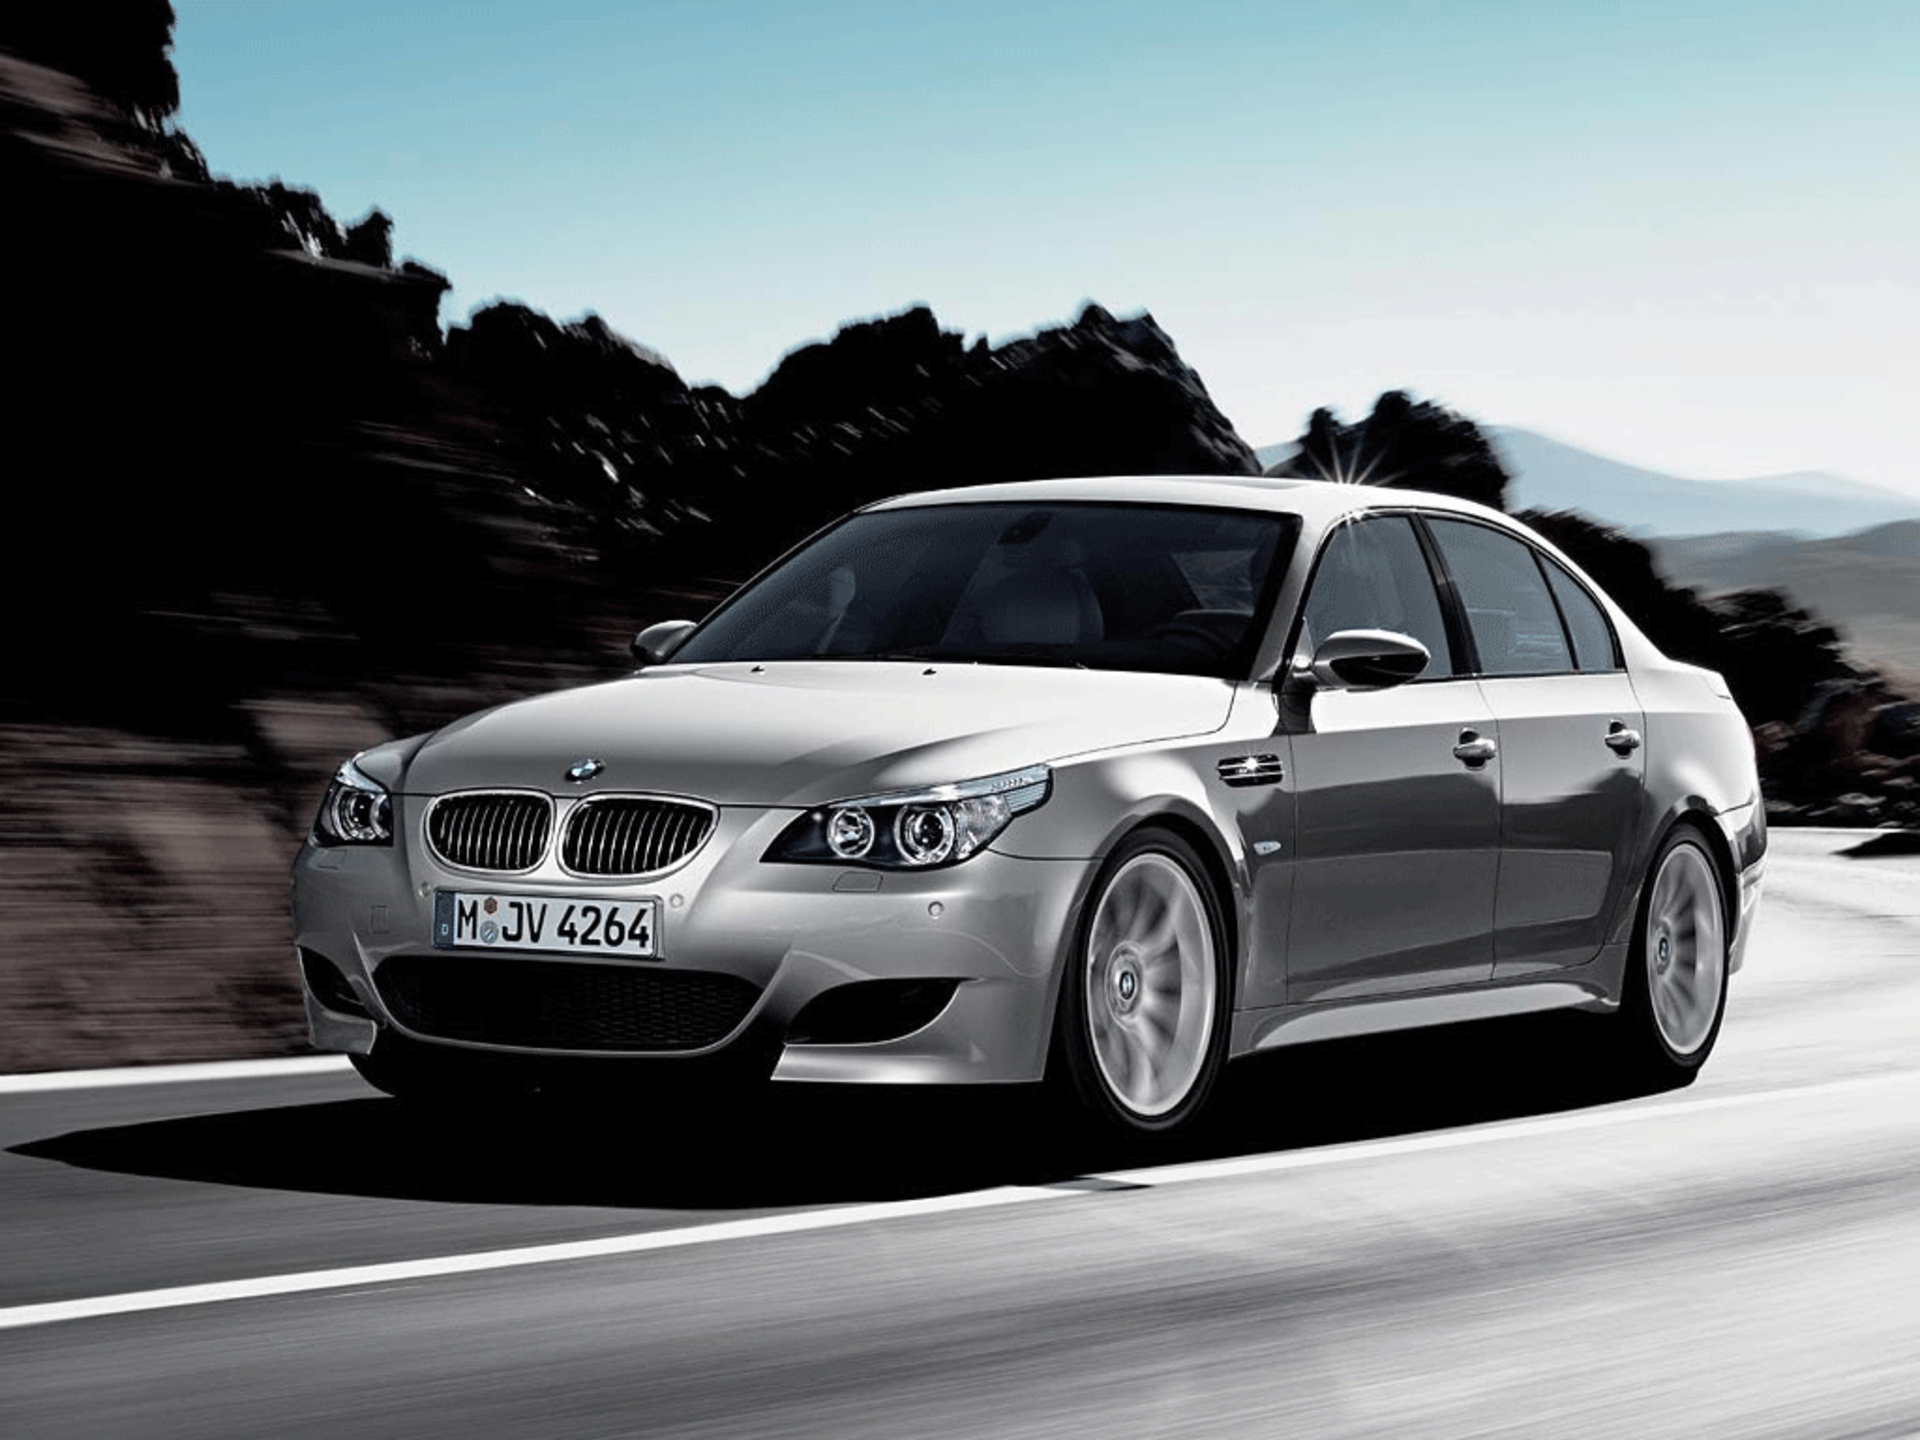 The E60 Bmw M5 Was The Last Four Door Supercar Clunkerture